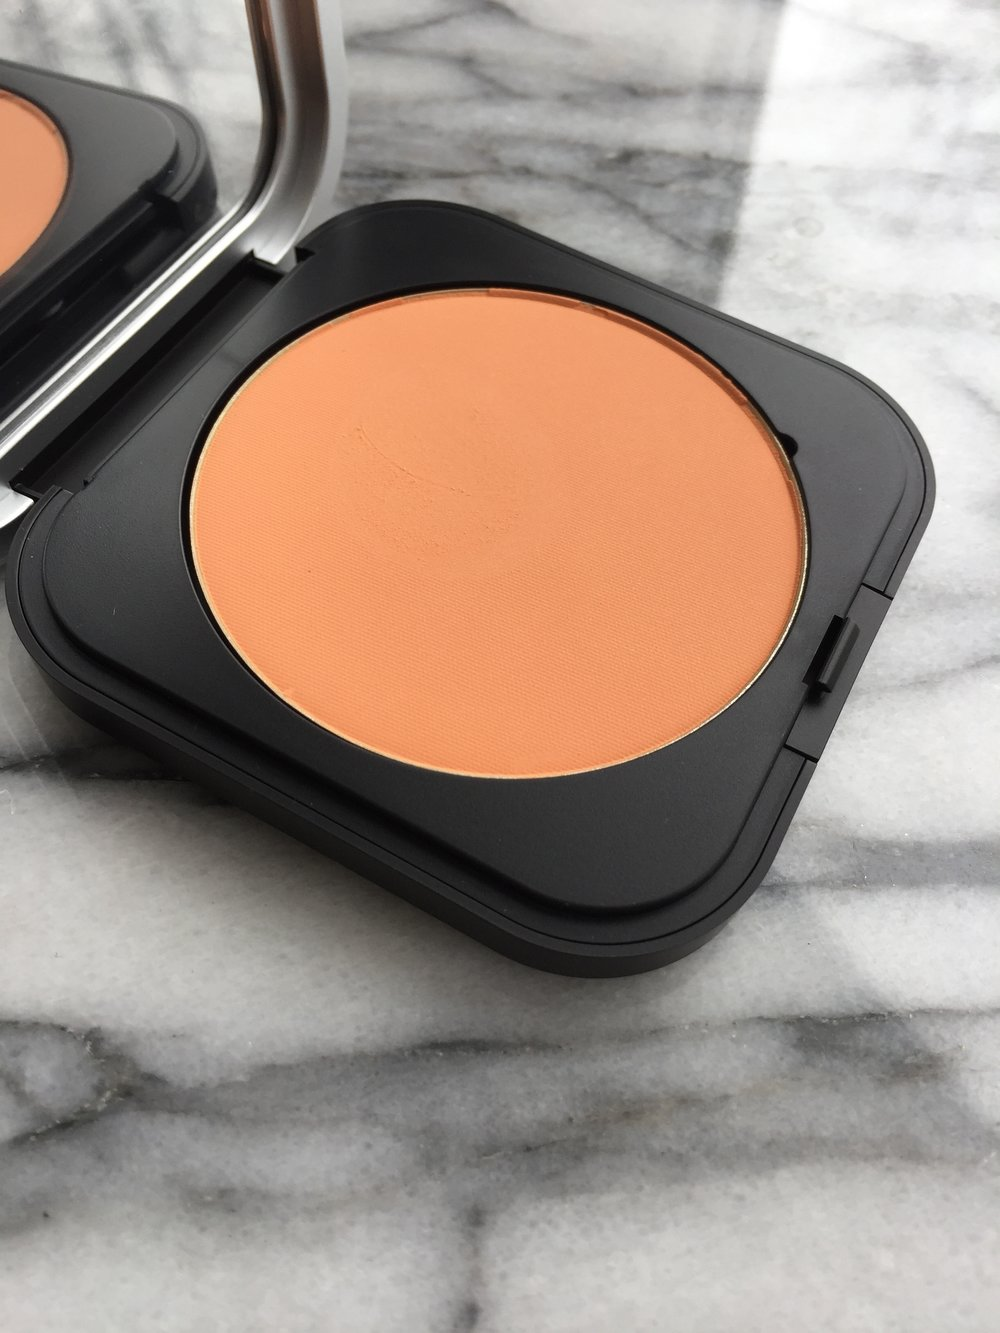 MUFE HD pressed finishing powder